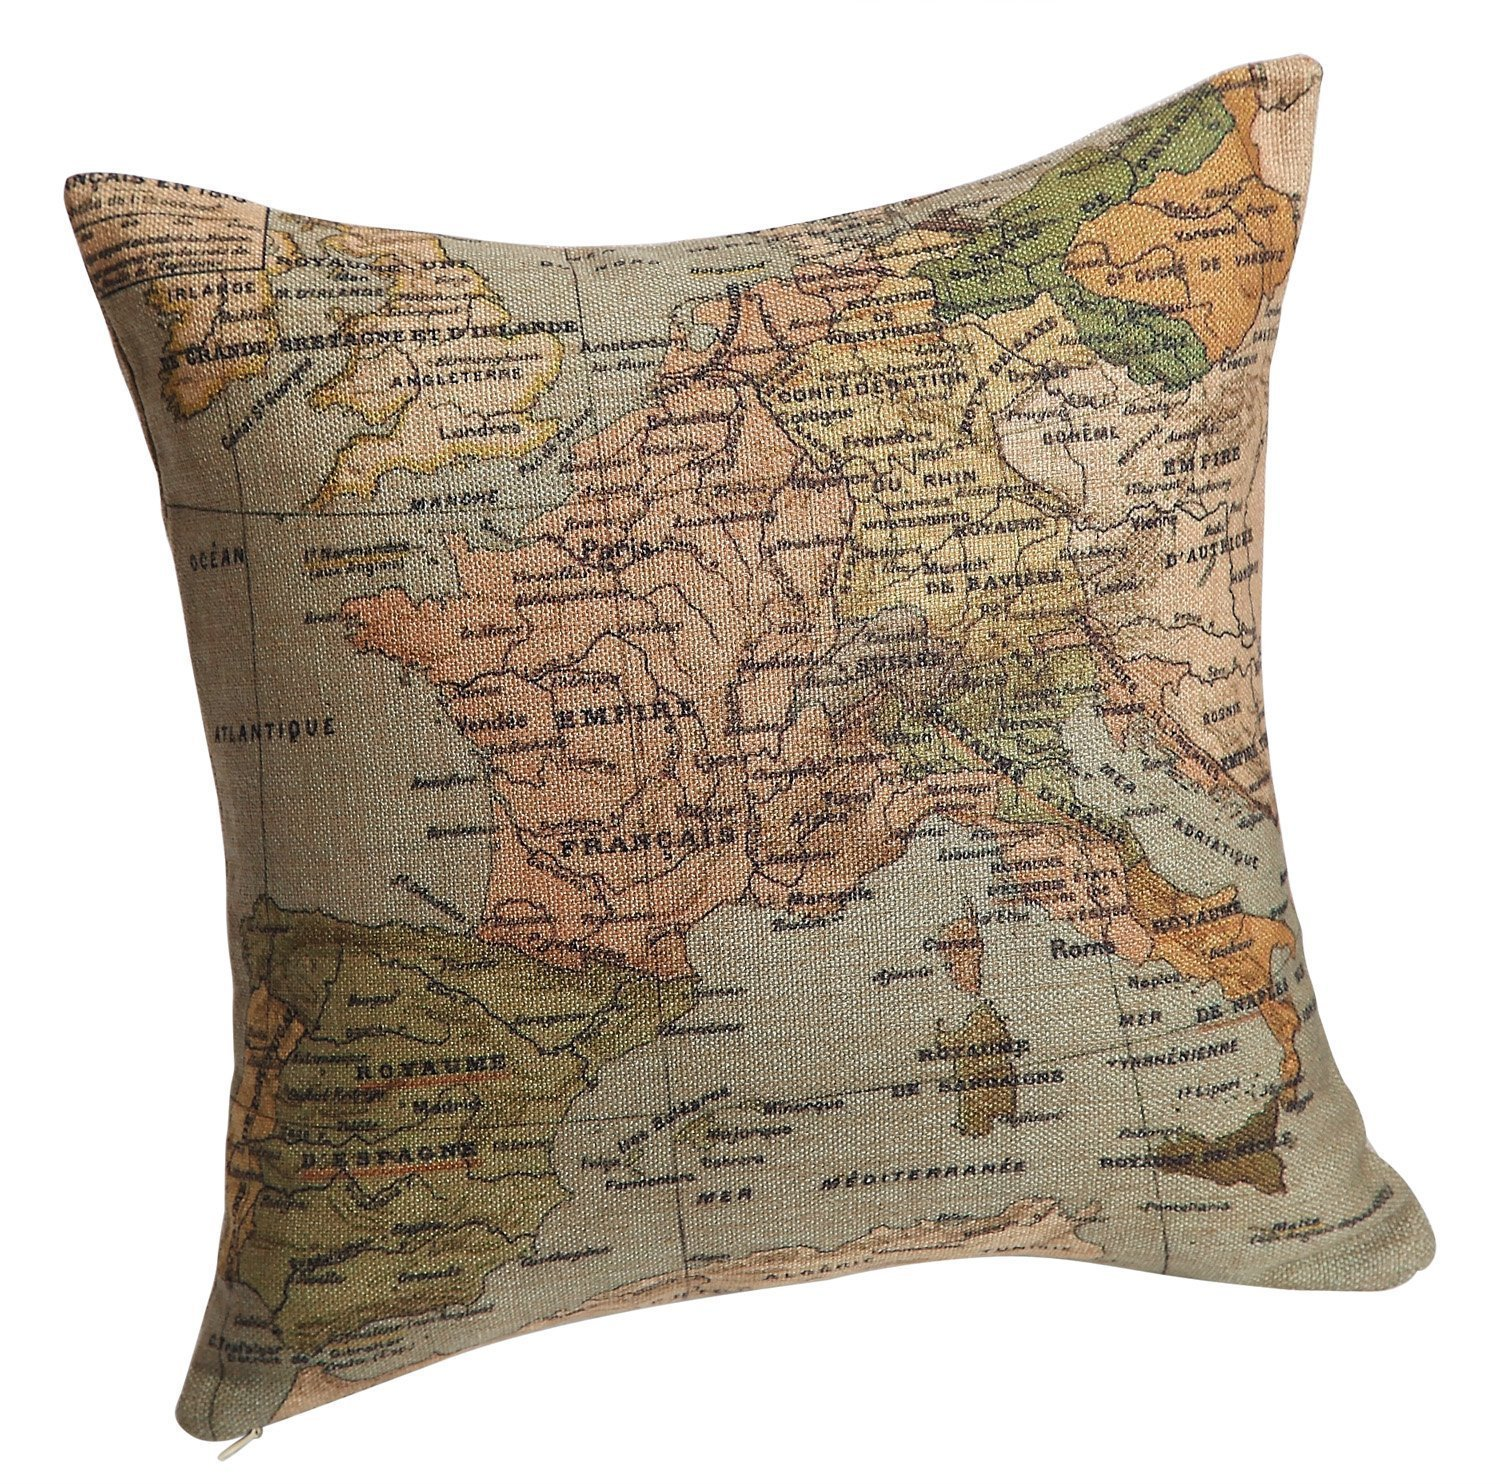 Amazon.com: Decorbox Decorative 20 x 20 Inch Linen Cloth Pillow ...